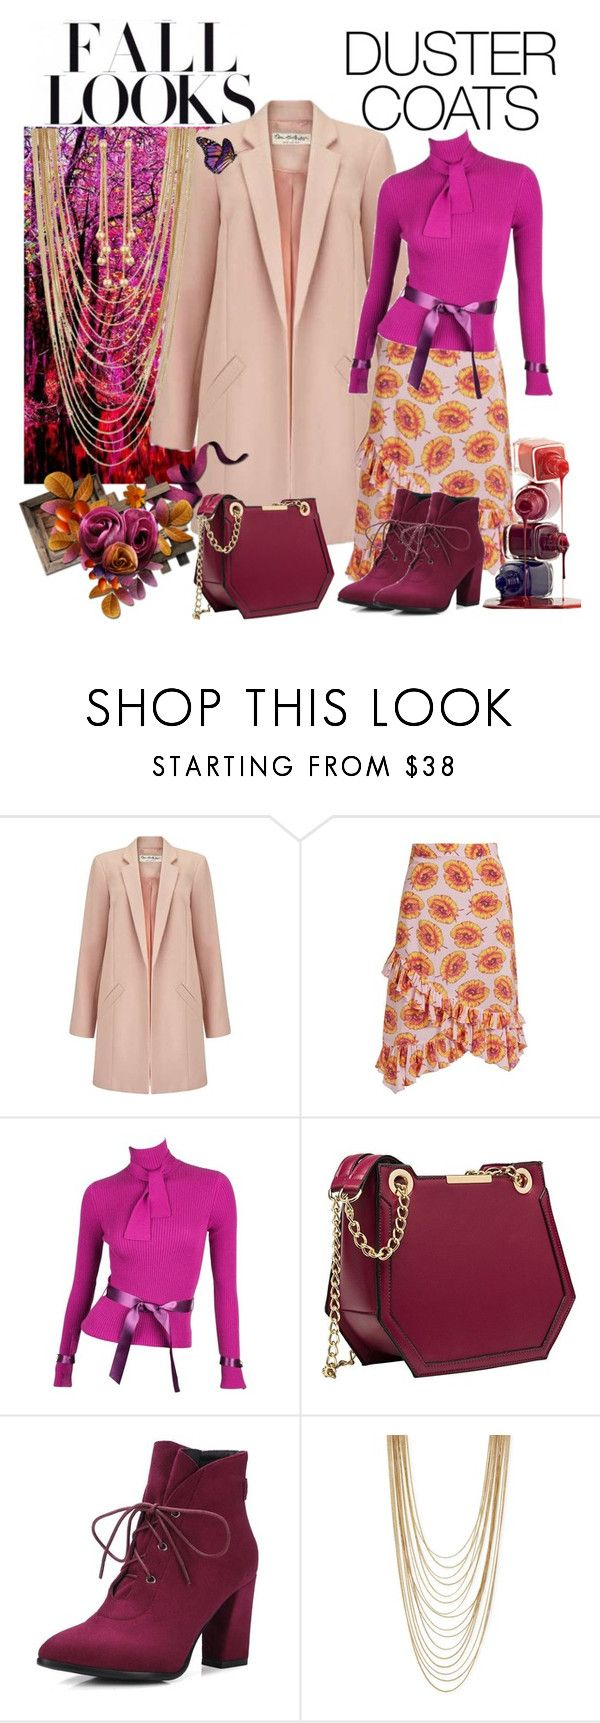 """""""fall looks"""" by daincyng ❤ liked on Polyvore featuring H&M, Miss Selfridge, Altuzarra, Karl Lagerfeld, BCBGeneration, Berry and DusterCoats"""